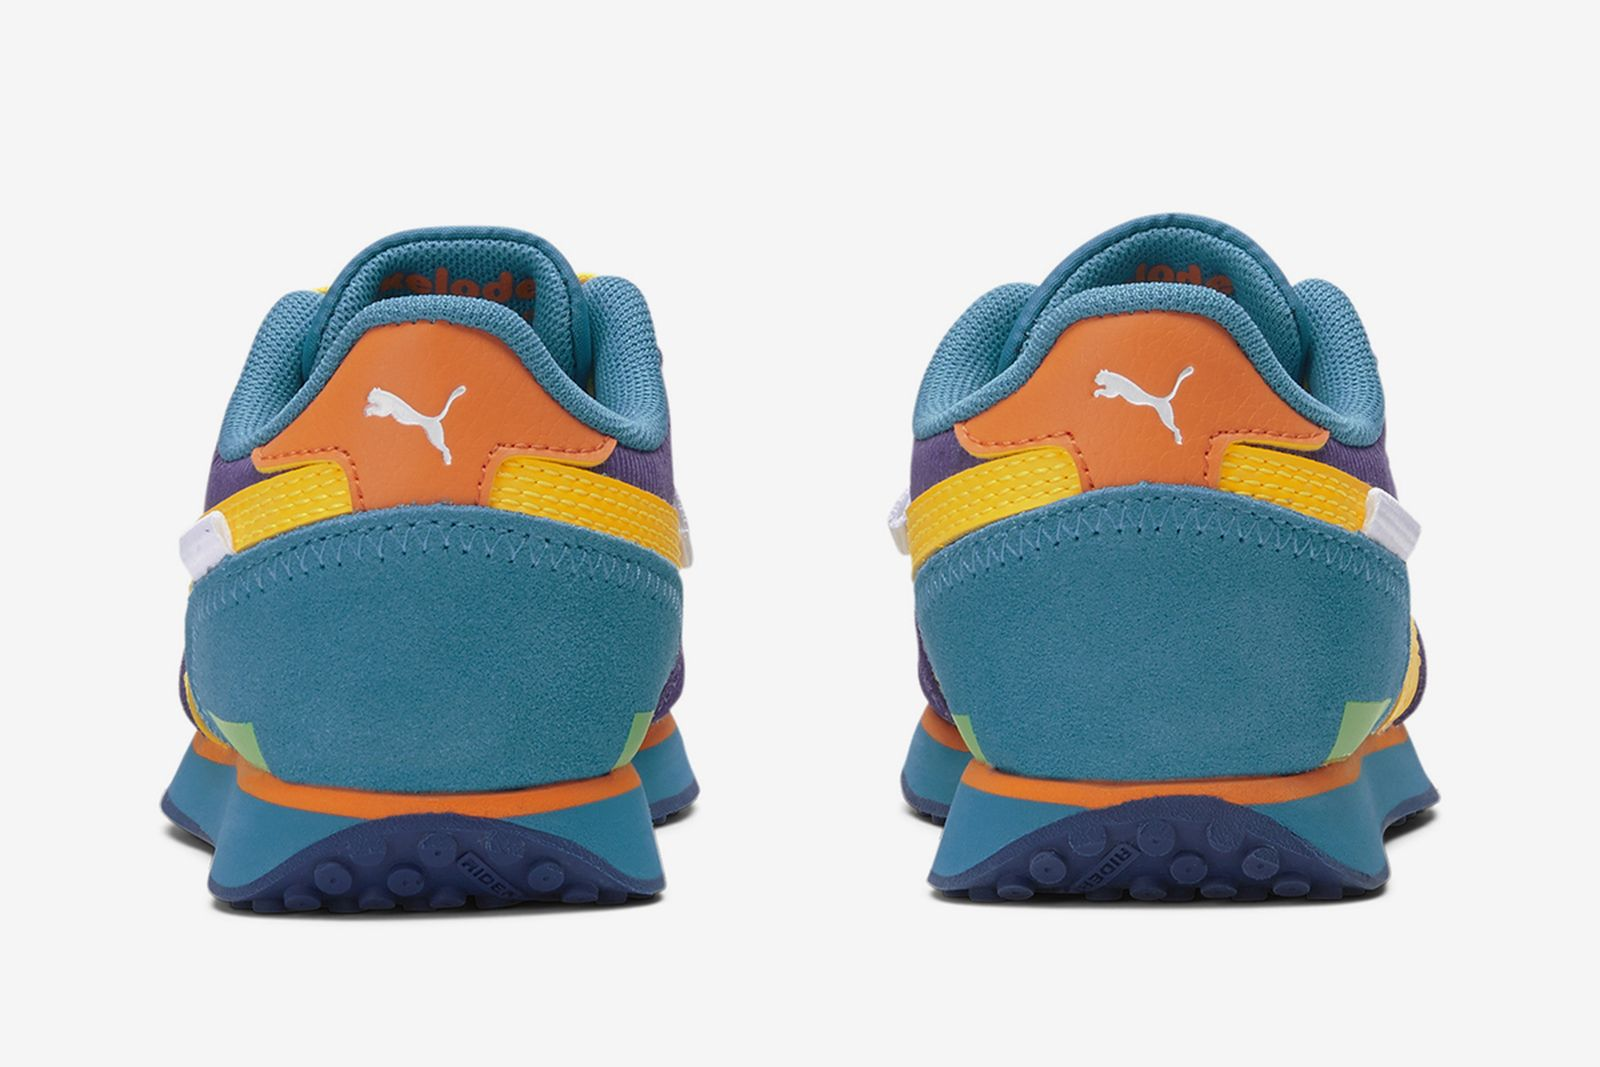 puma-rugrats-collection-release-date-price-07